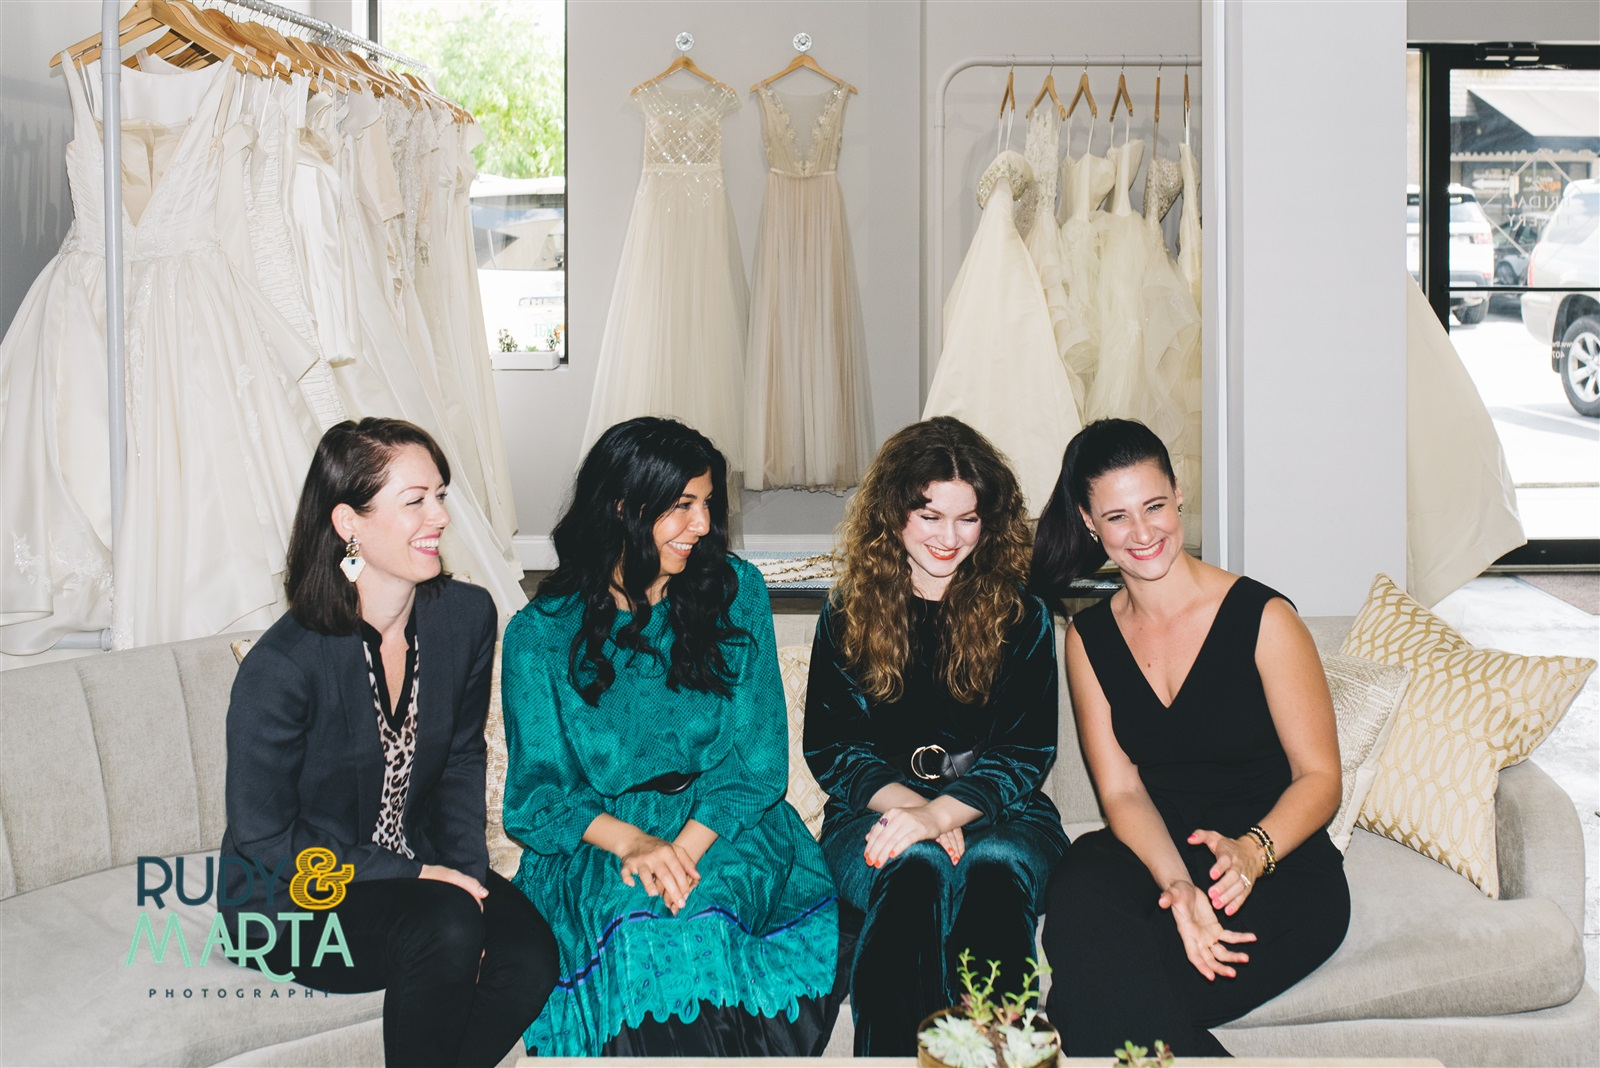 Who We Are - Combined 28 years invested in bridal fashion. This is a real experience created for one bride at a time. And we are on the hunt to find you the perfect dress and accessories.